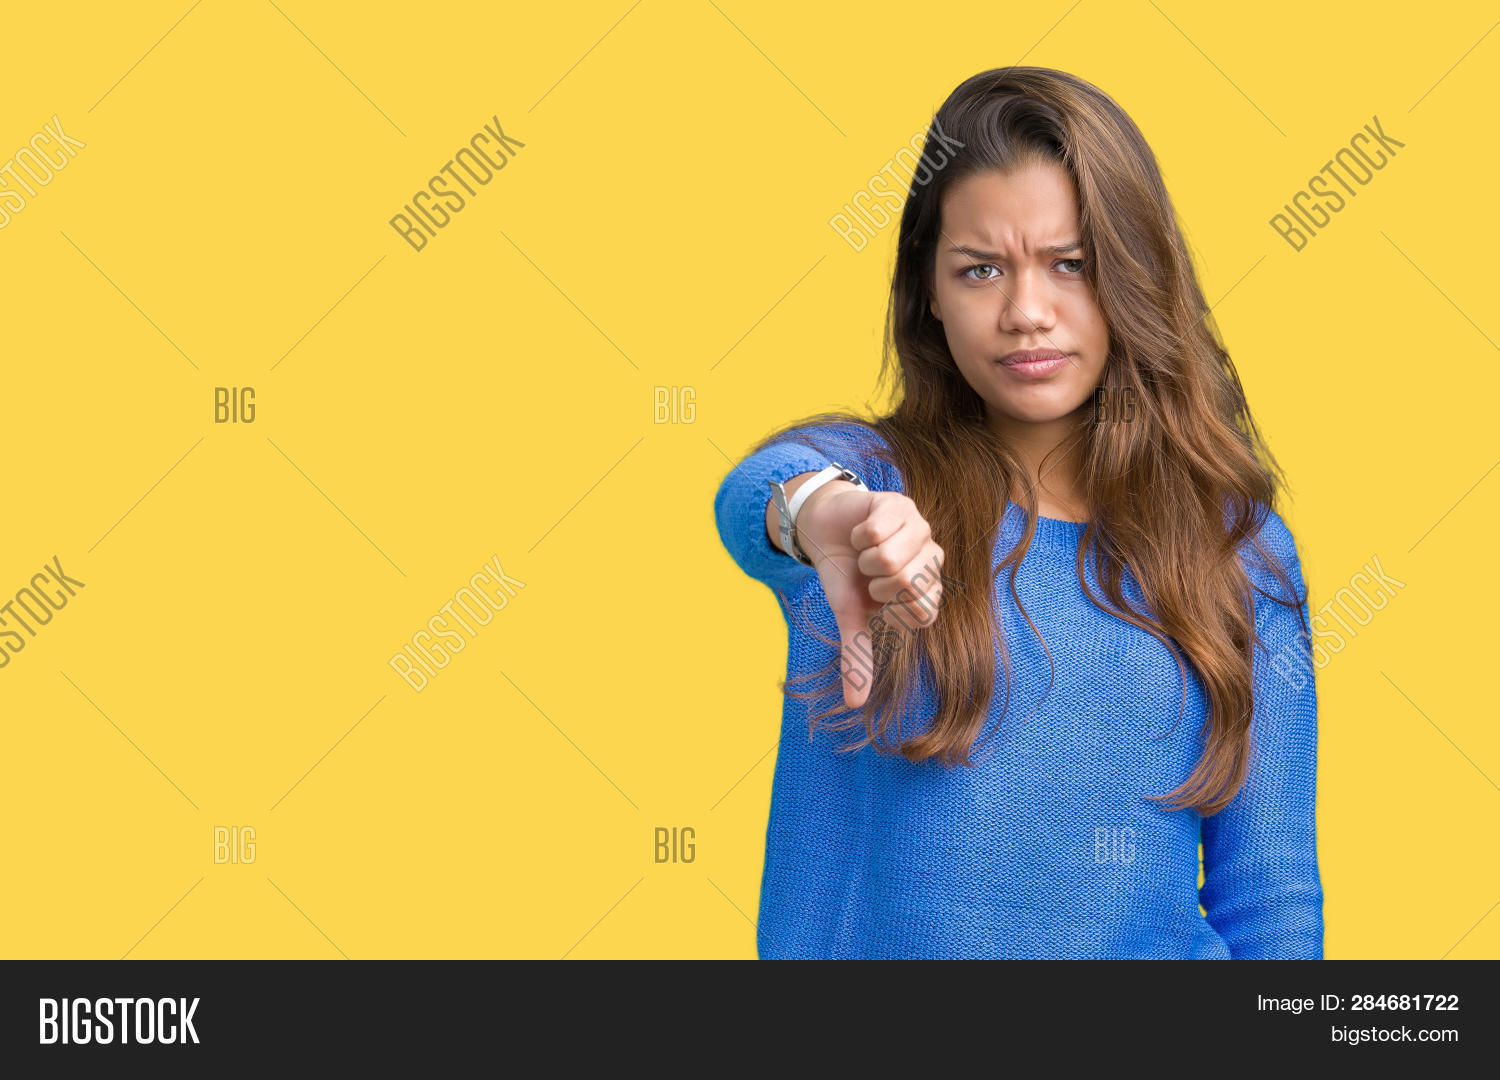 adult,angry,attractive,background,bad,beautiful,blue,brunette,casual,colombian,concept,confident,disagree,dislike,down,expression,face,fail,failure,female,finger,gesture,gesturing,girl,hand,hispanic,isolated,latin american,long hair,looking,negative,no,people,person,portrait,rejection,sad,showing,sign,sweater,symbol,thumb,thumbs,thumbs down,unhappy,wearing,winter,woman,wrong,young